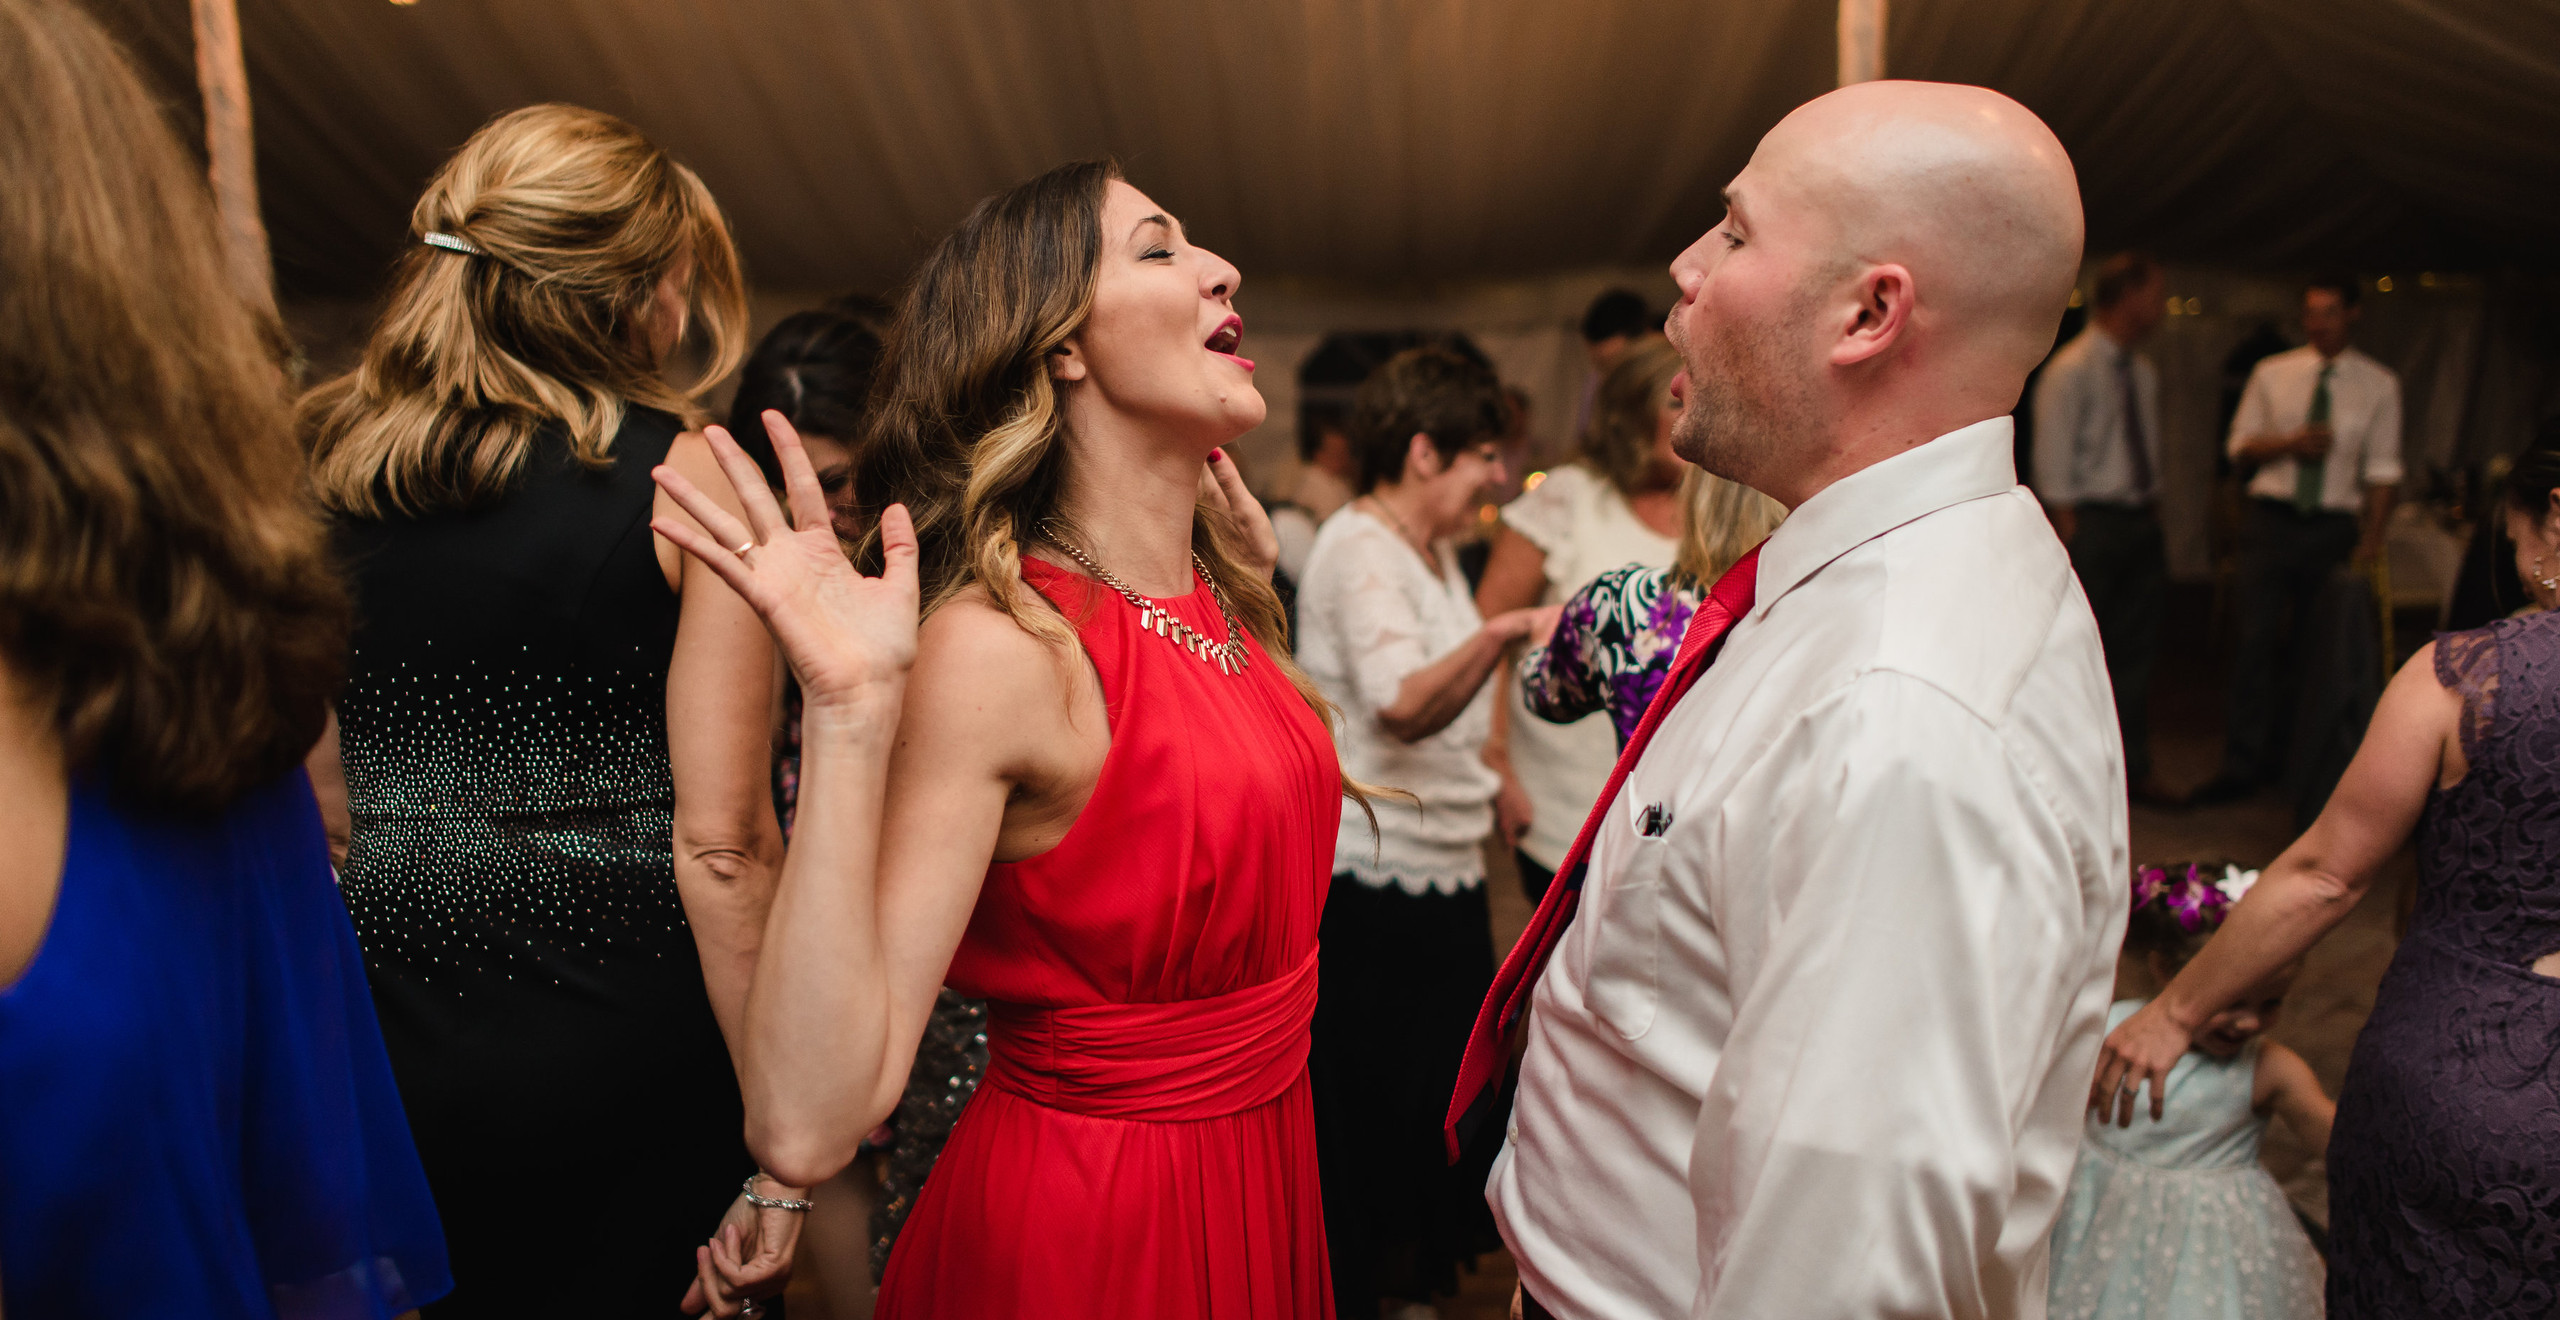 woman in red dress dancing with man at wedding